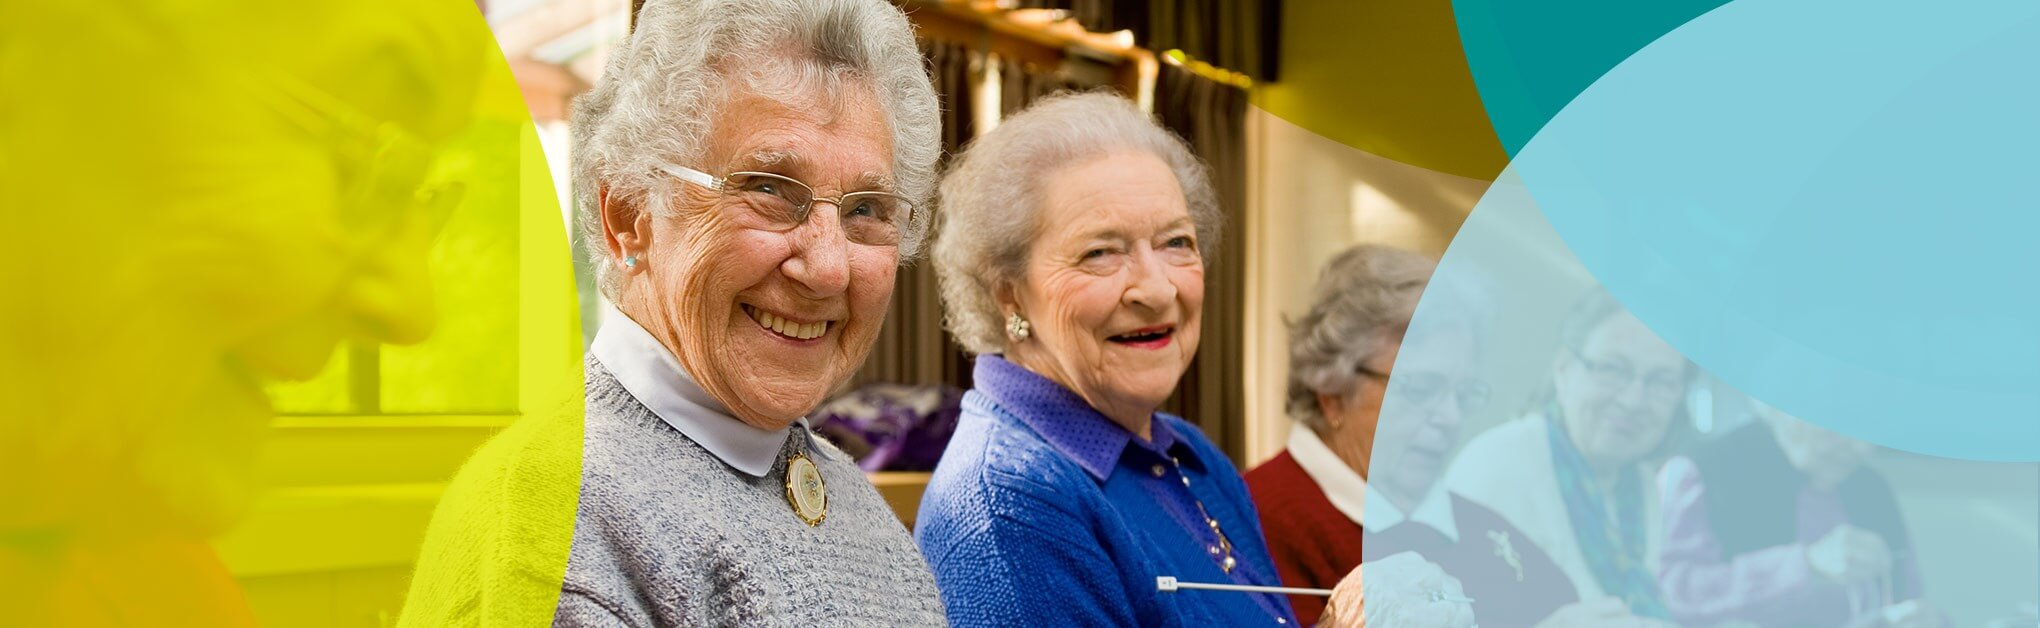 What aged care services are available in Melbourne Australia?